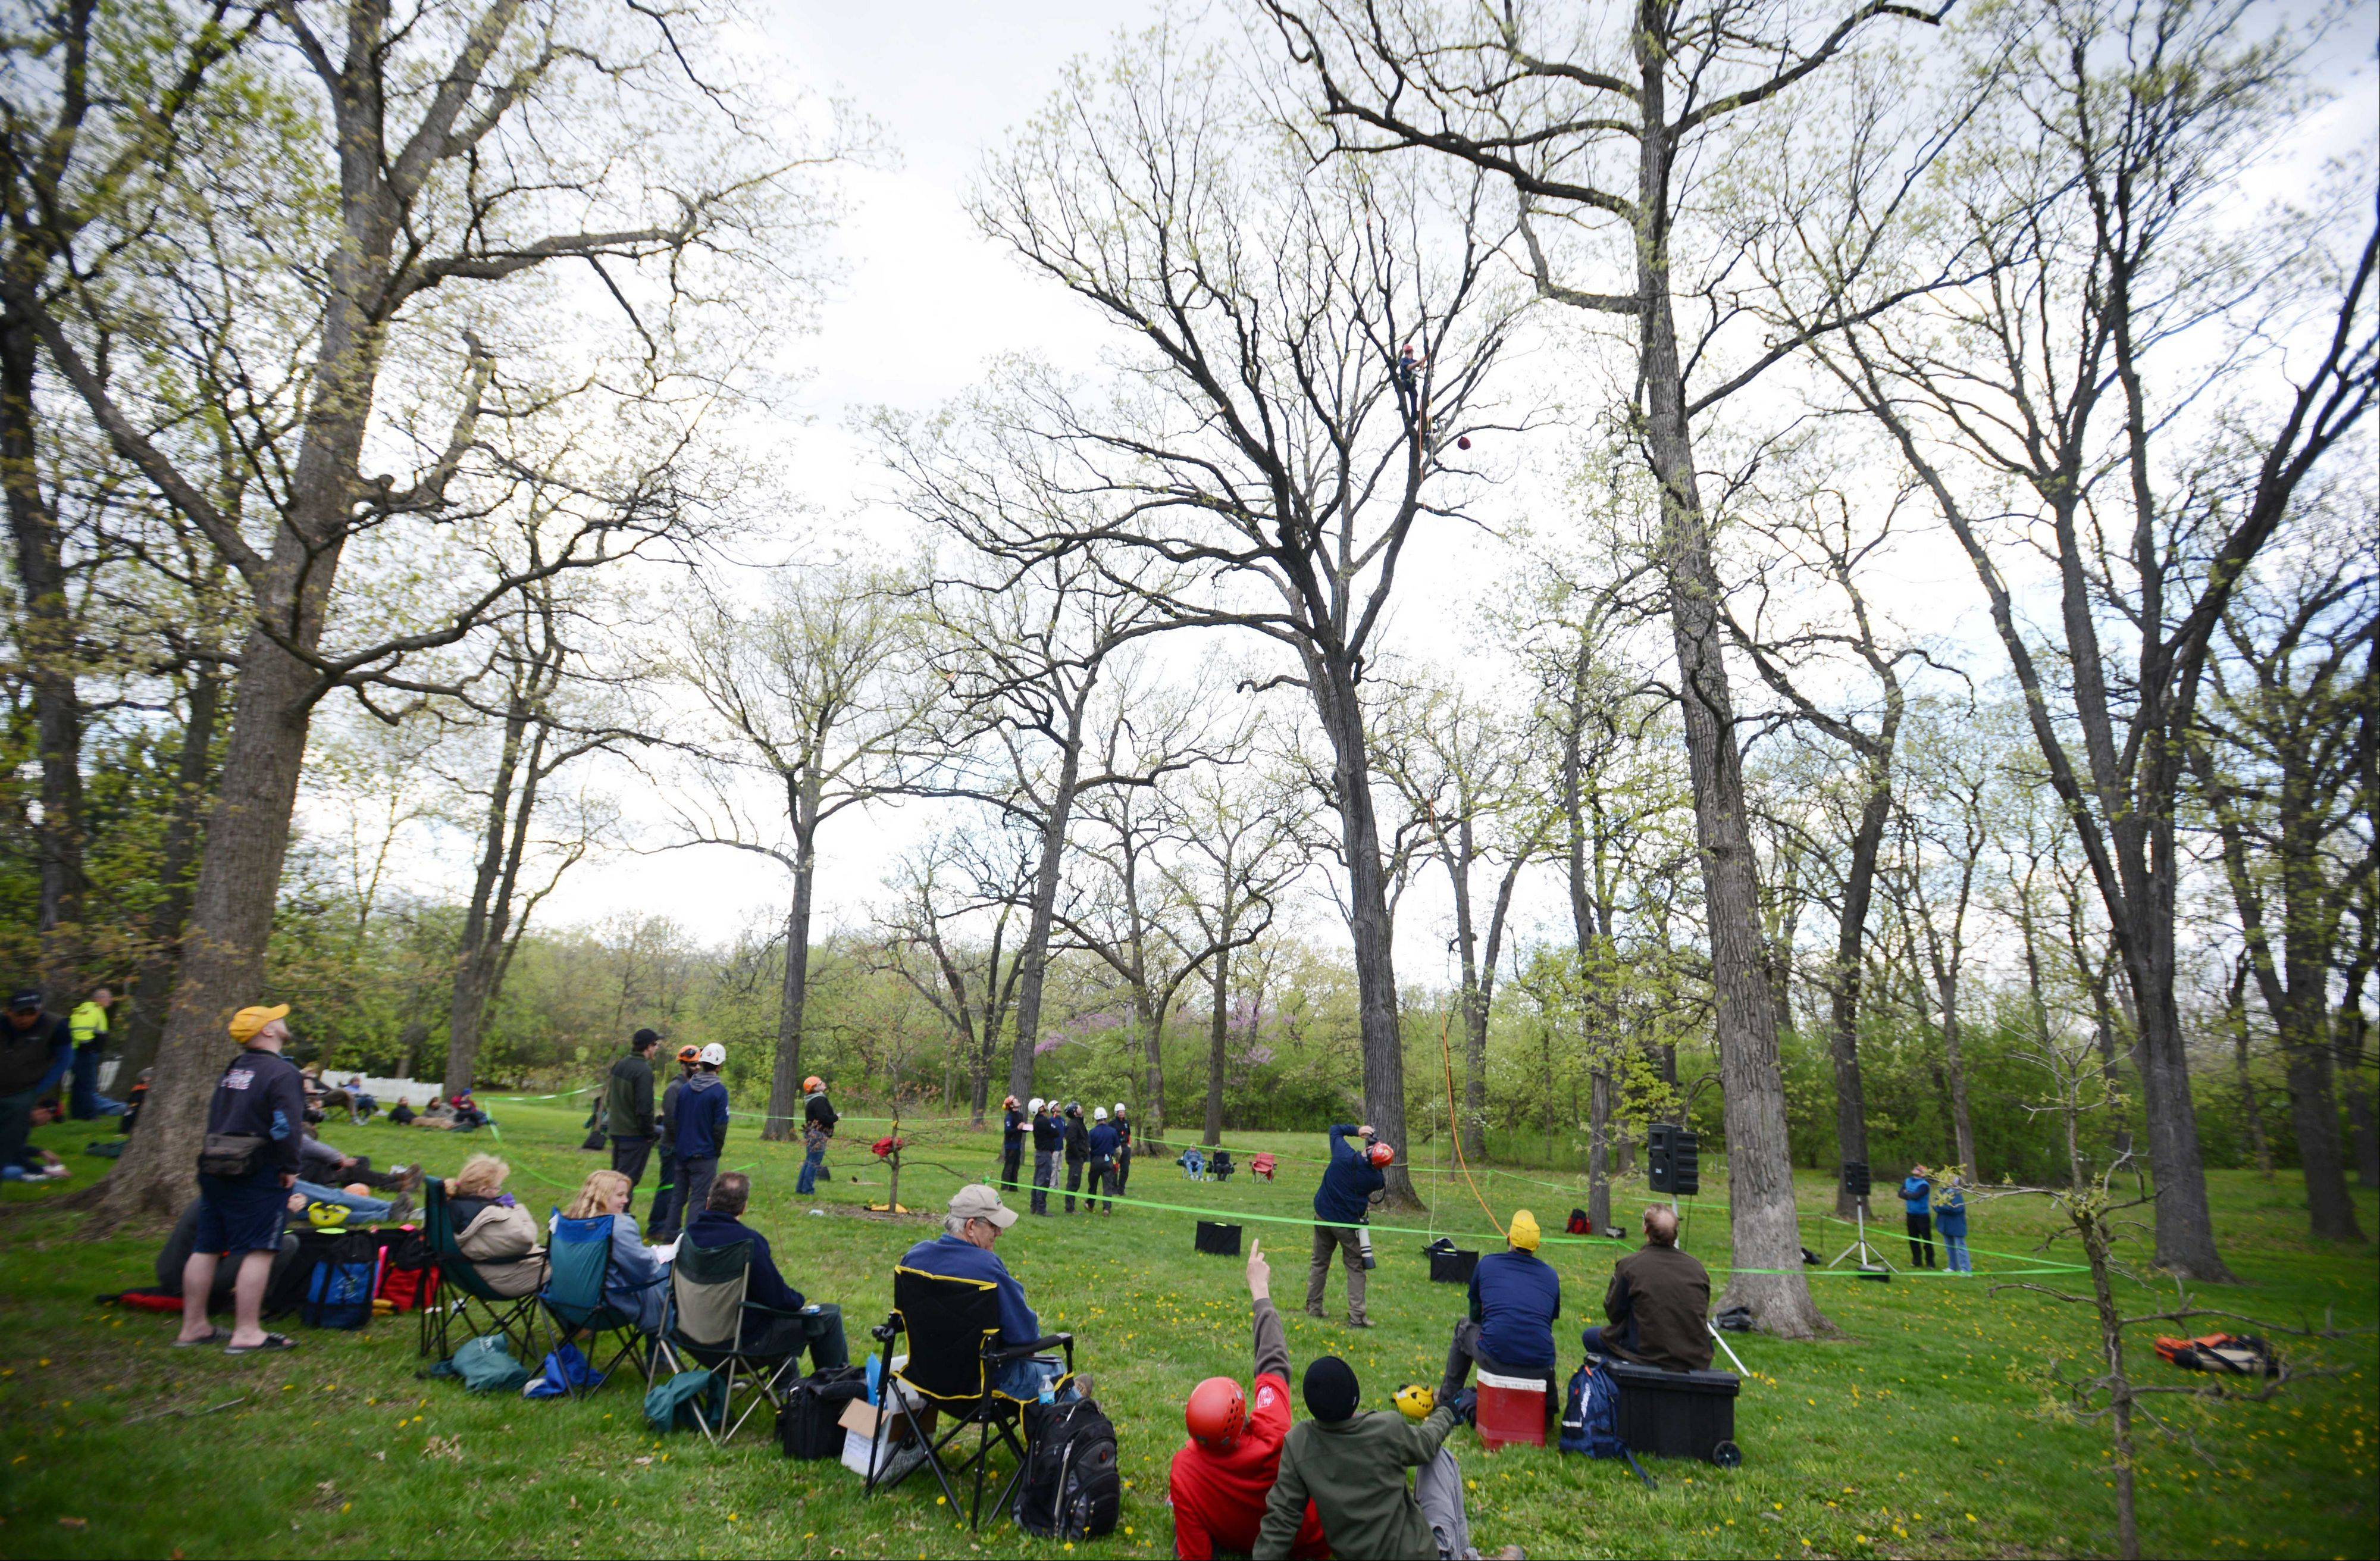 Thirty professional tree climbers competed for the title of best climber in the Illinois Arborist Association annual tree climbing competition Saturday at Cantigny Gardens in Wheaton. Climbers kept their eyes to the sky as they watch friends climb.